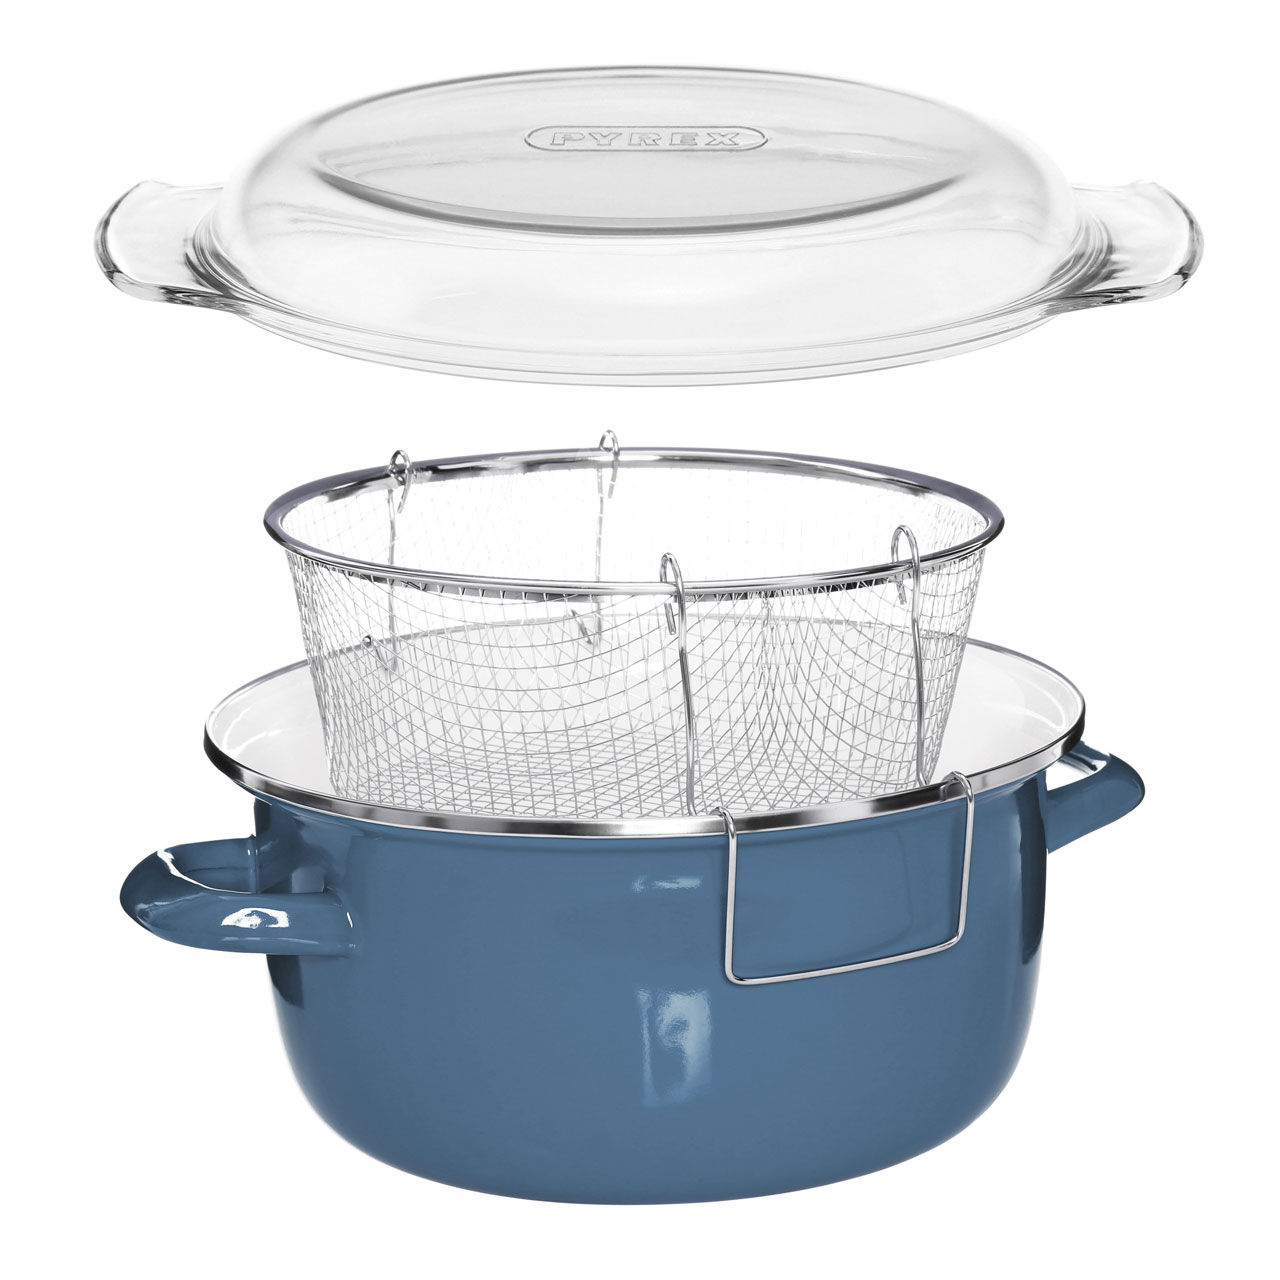 Prime Furnishing Deep Fryer With Glass Pyrex Lid - Blue